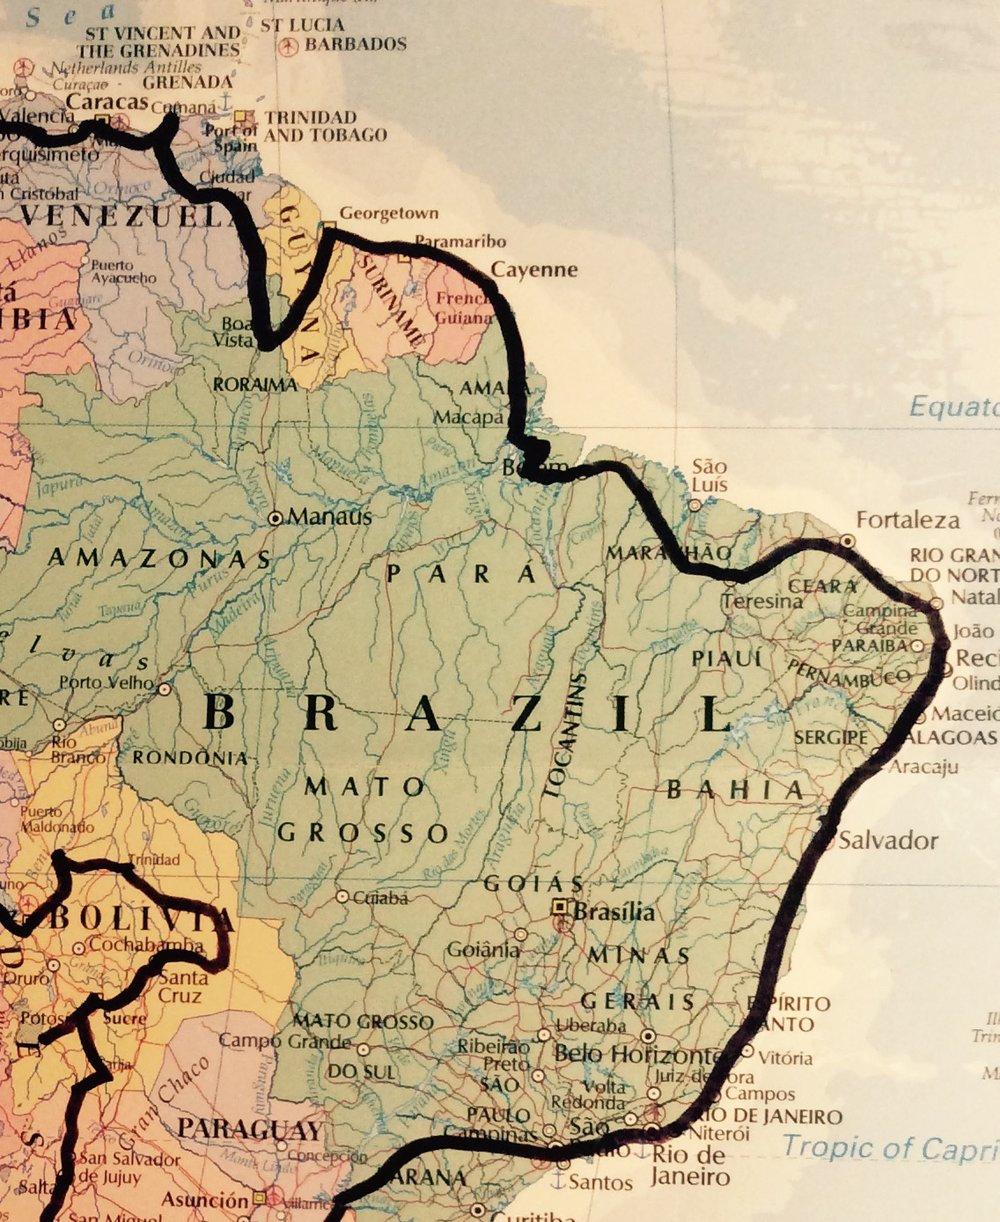 Big Brazil. Crossing the Amazon into Belem means there's two straight weeks of highway riding 500-600kms a day before getting anywhere near Rio - cjG